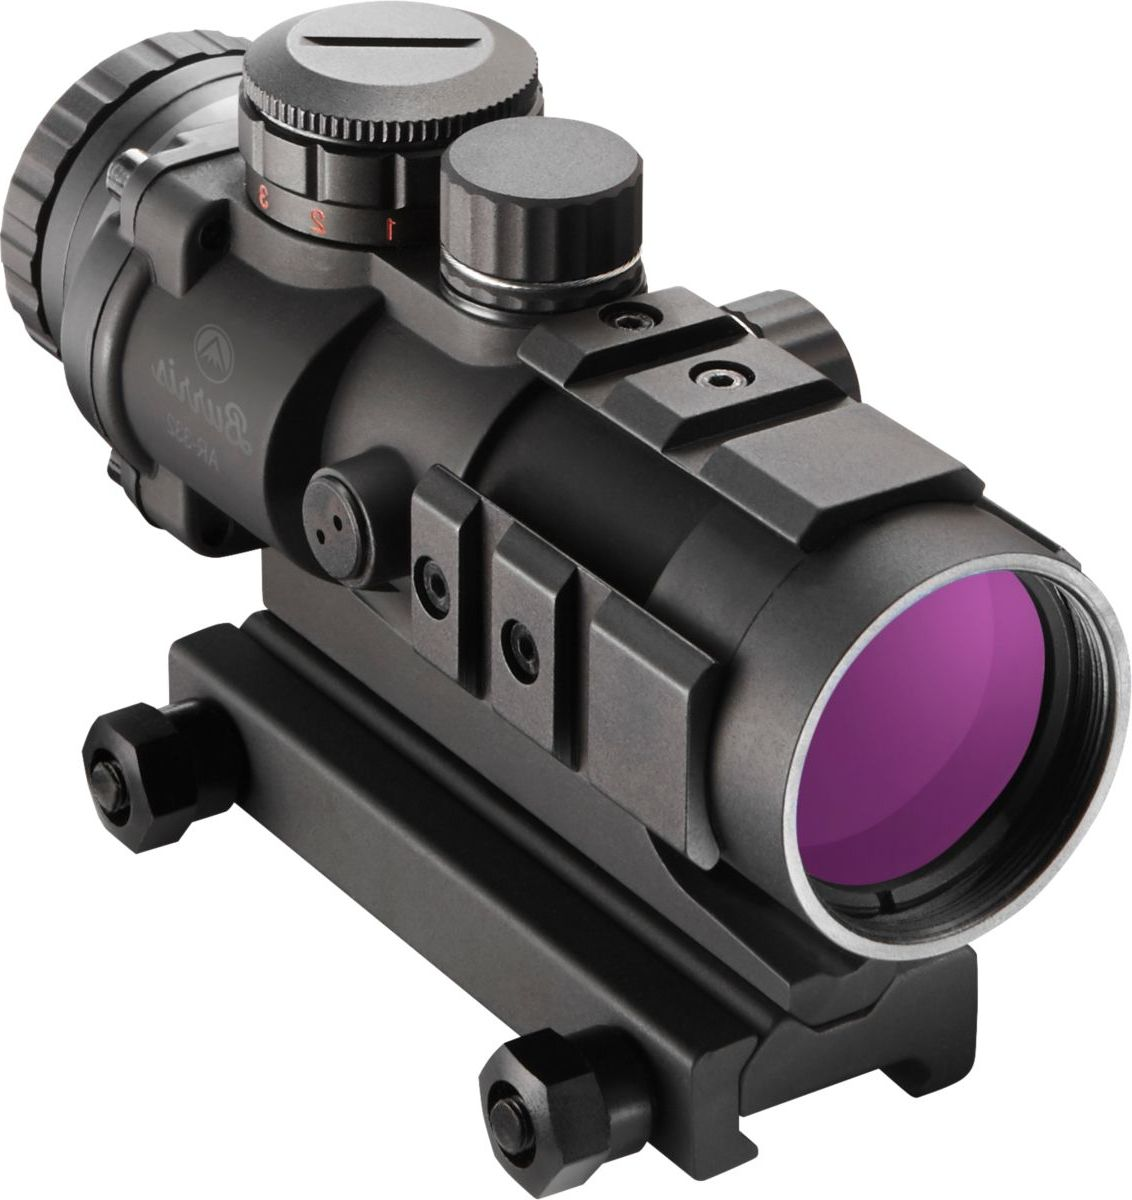 Burris AR Prism Sight